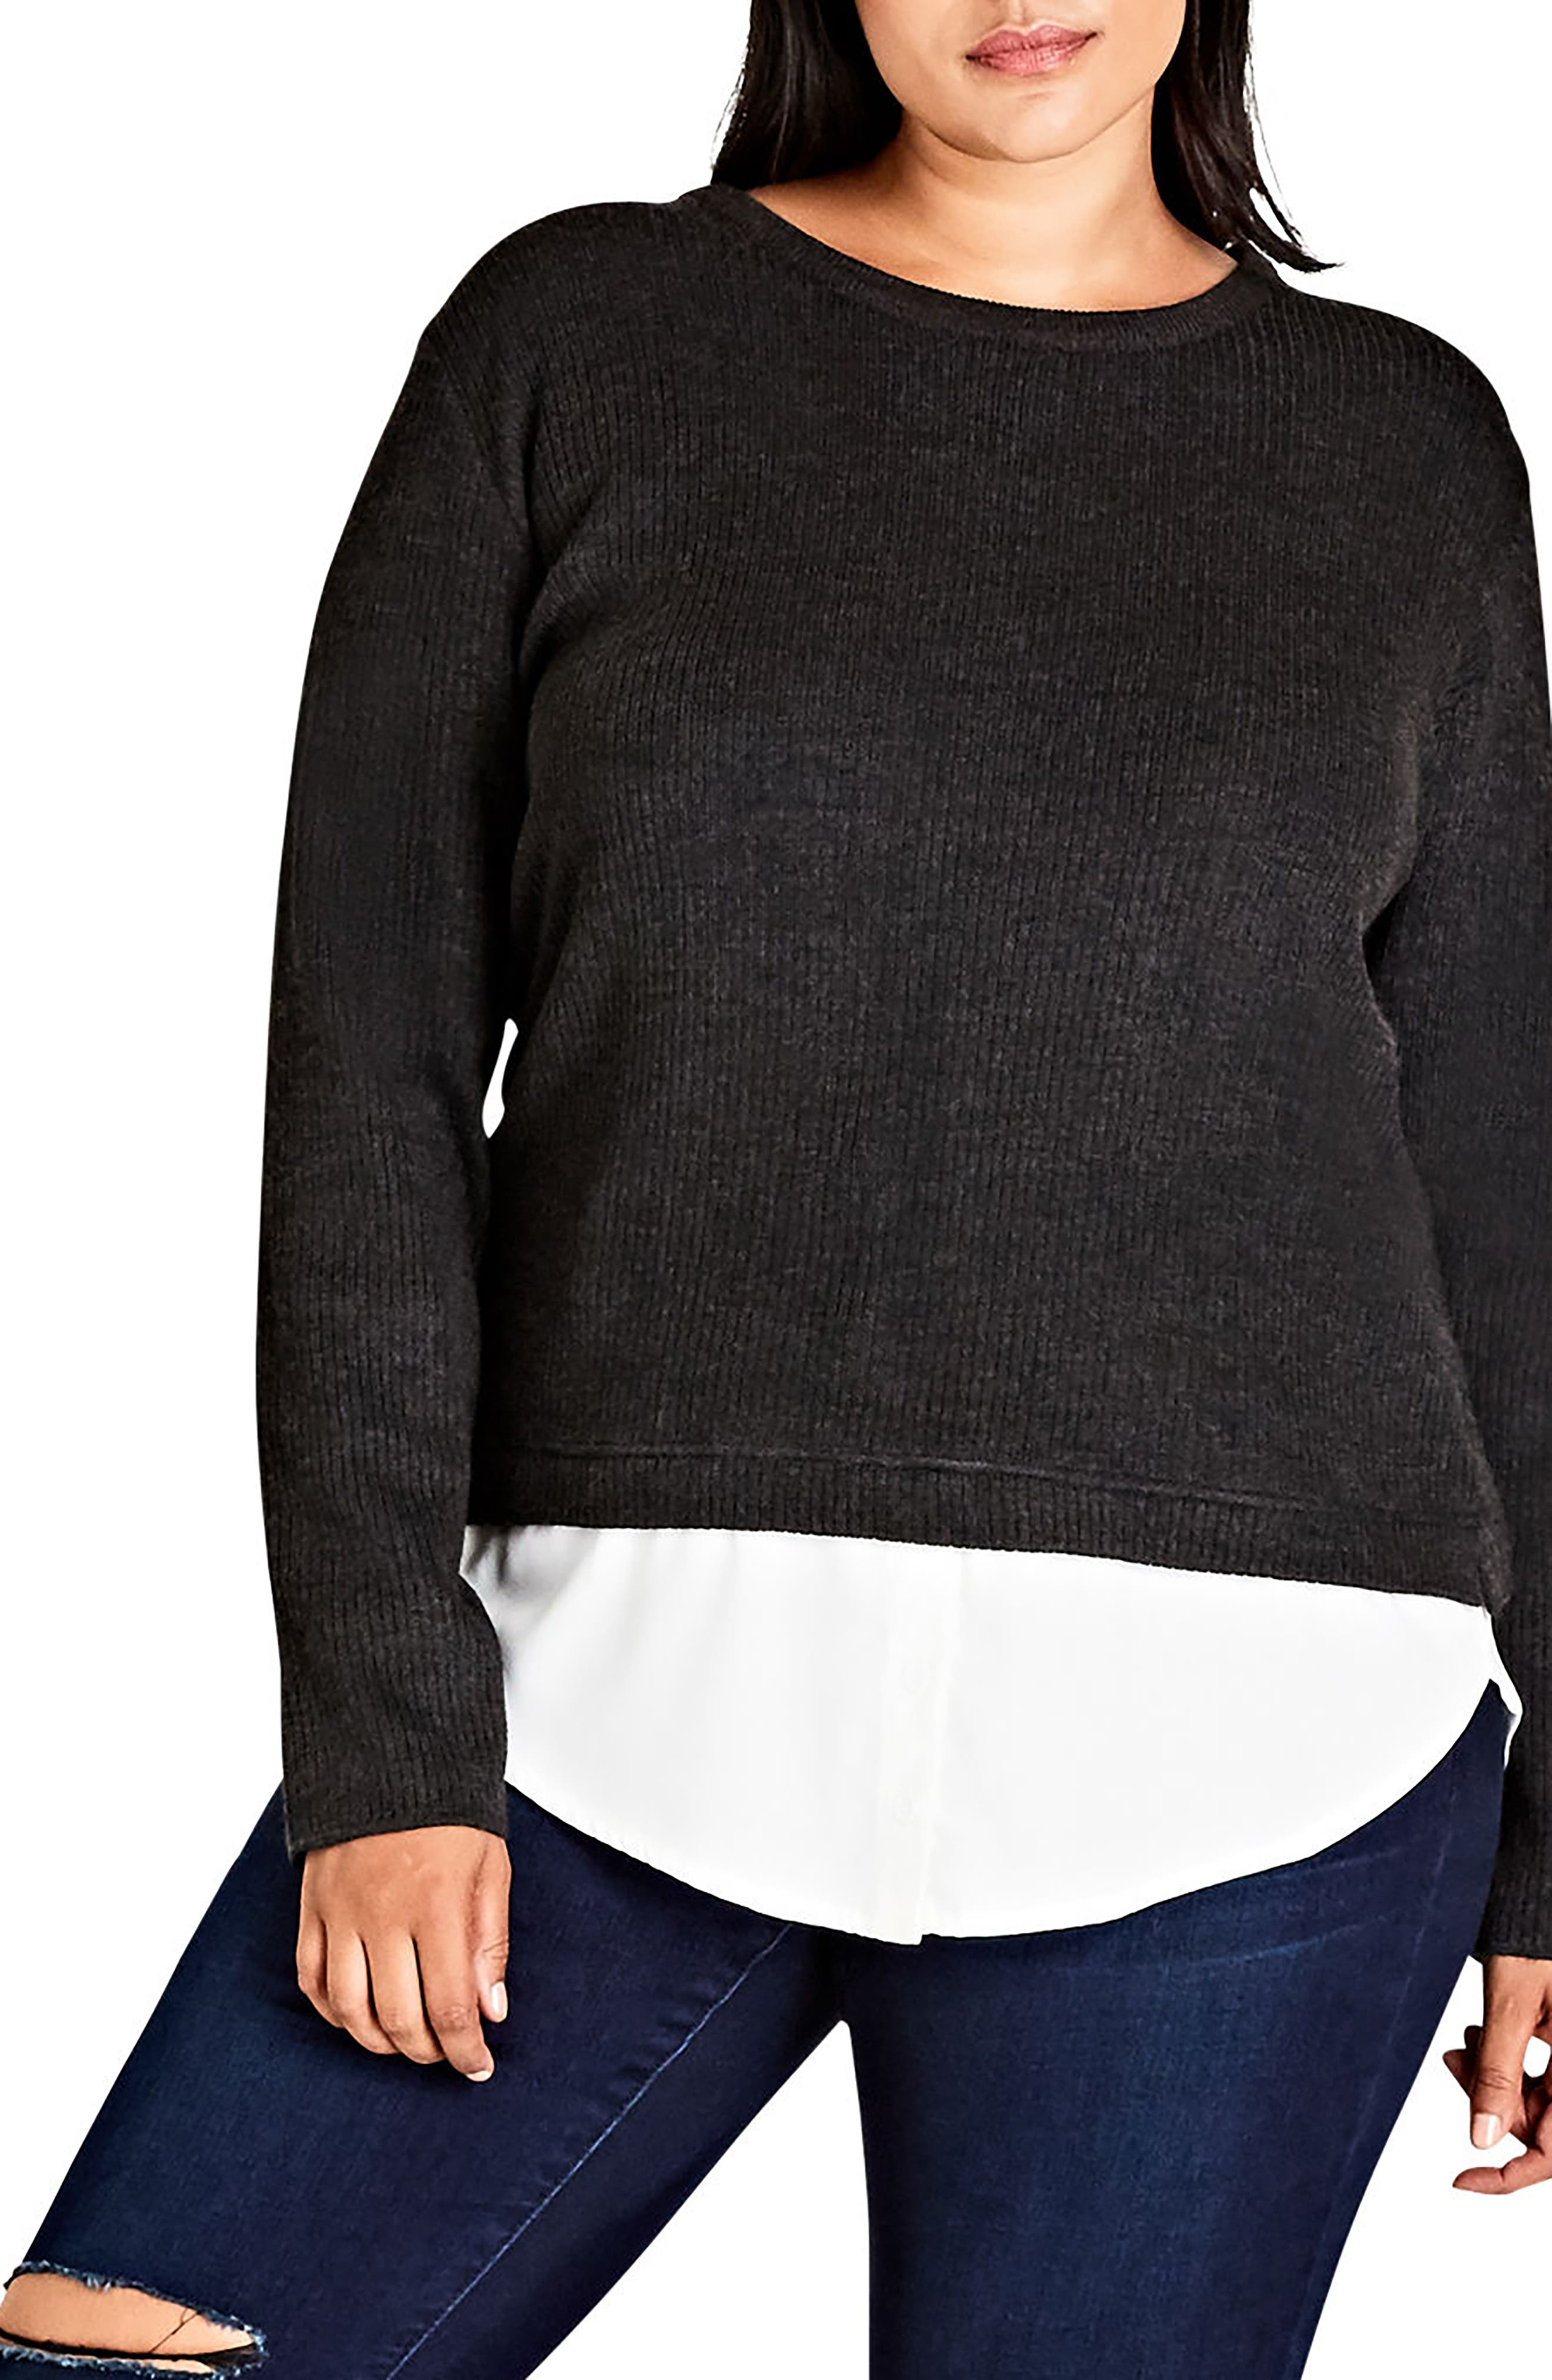 Alternate Image 1 Selected - City Chic Promise Me Sweater (Plus Size)